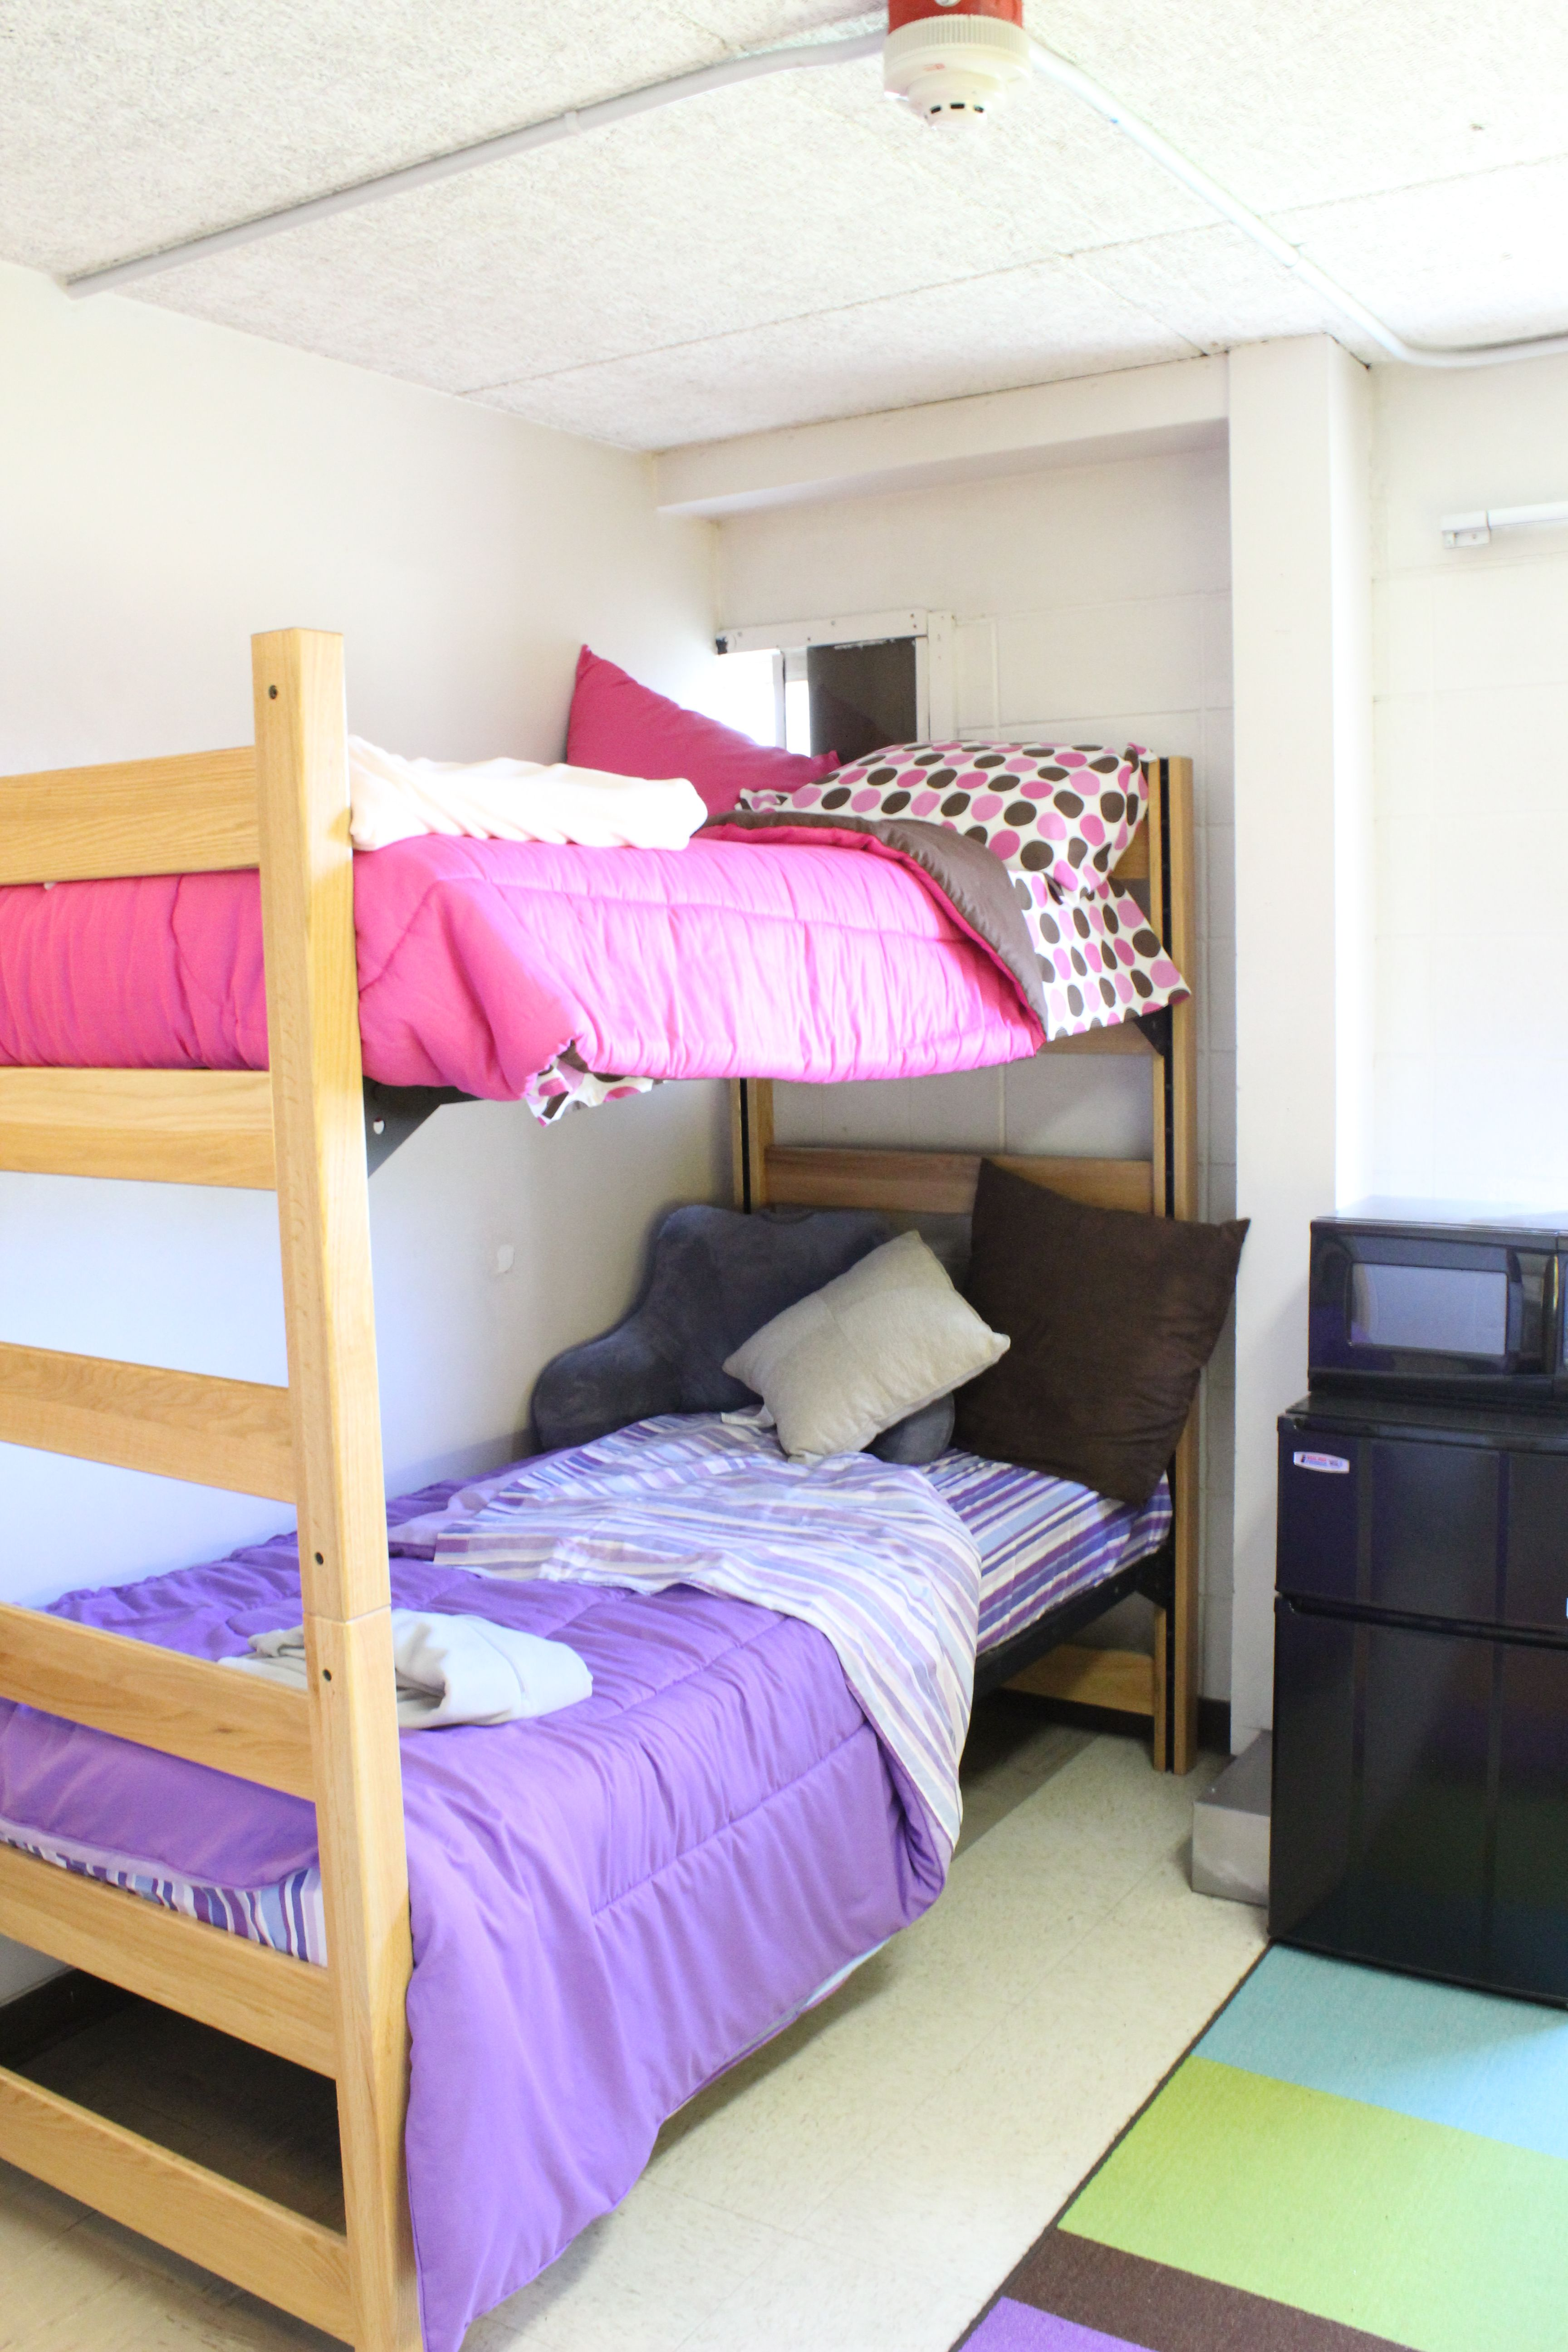 Loft bed with desk and dresser  Standard Double Room includes two beds bunkbed style with twin